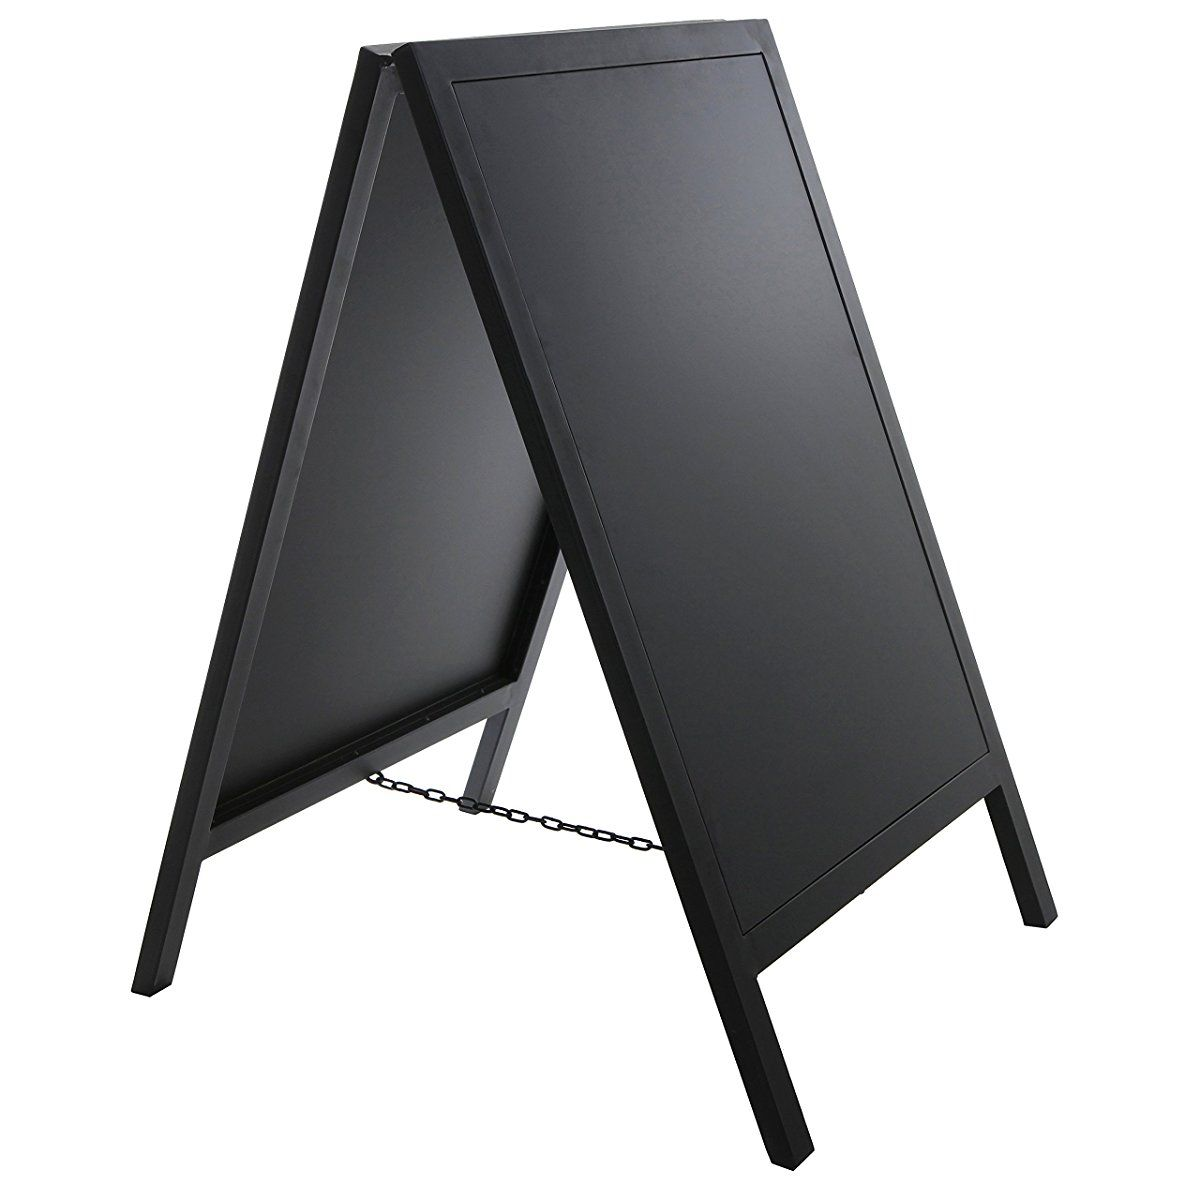 A Frame Sign Stand | Arts - Arts